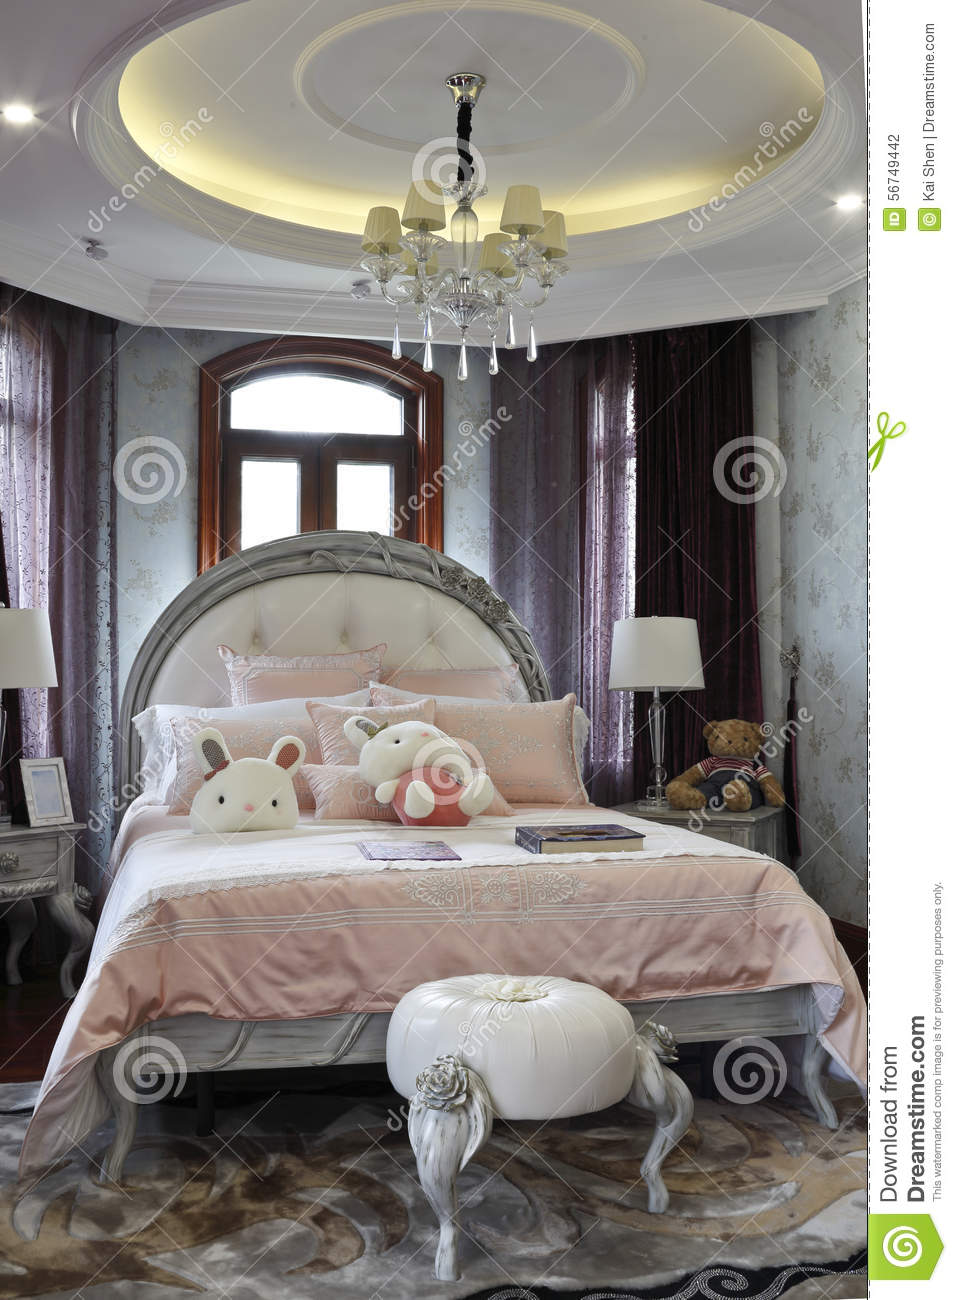 Elegant Romantic Bedrooms: Elegant And Romantic A Girl Bedroom Editorial Photography